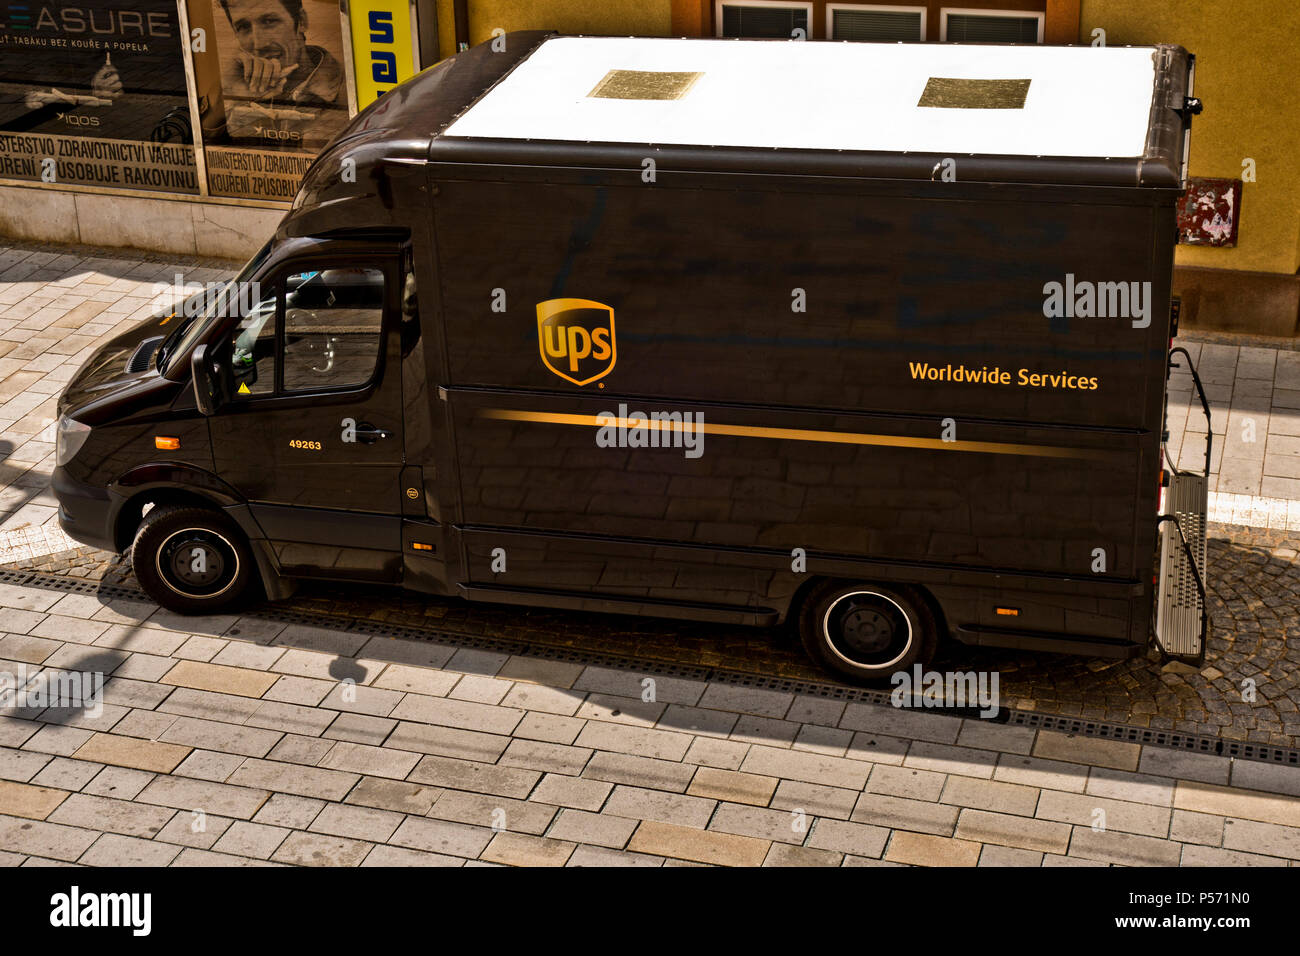 UPS, United Parcel Service truck parked in the street of Prague - Stock Image